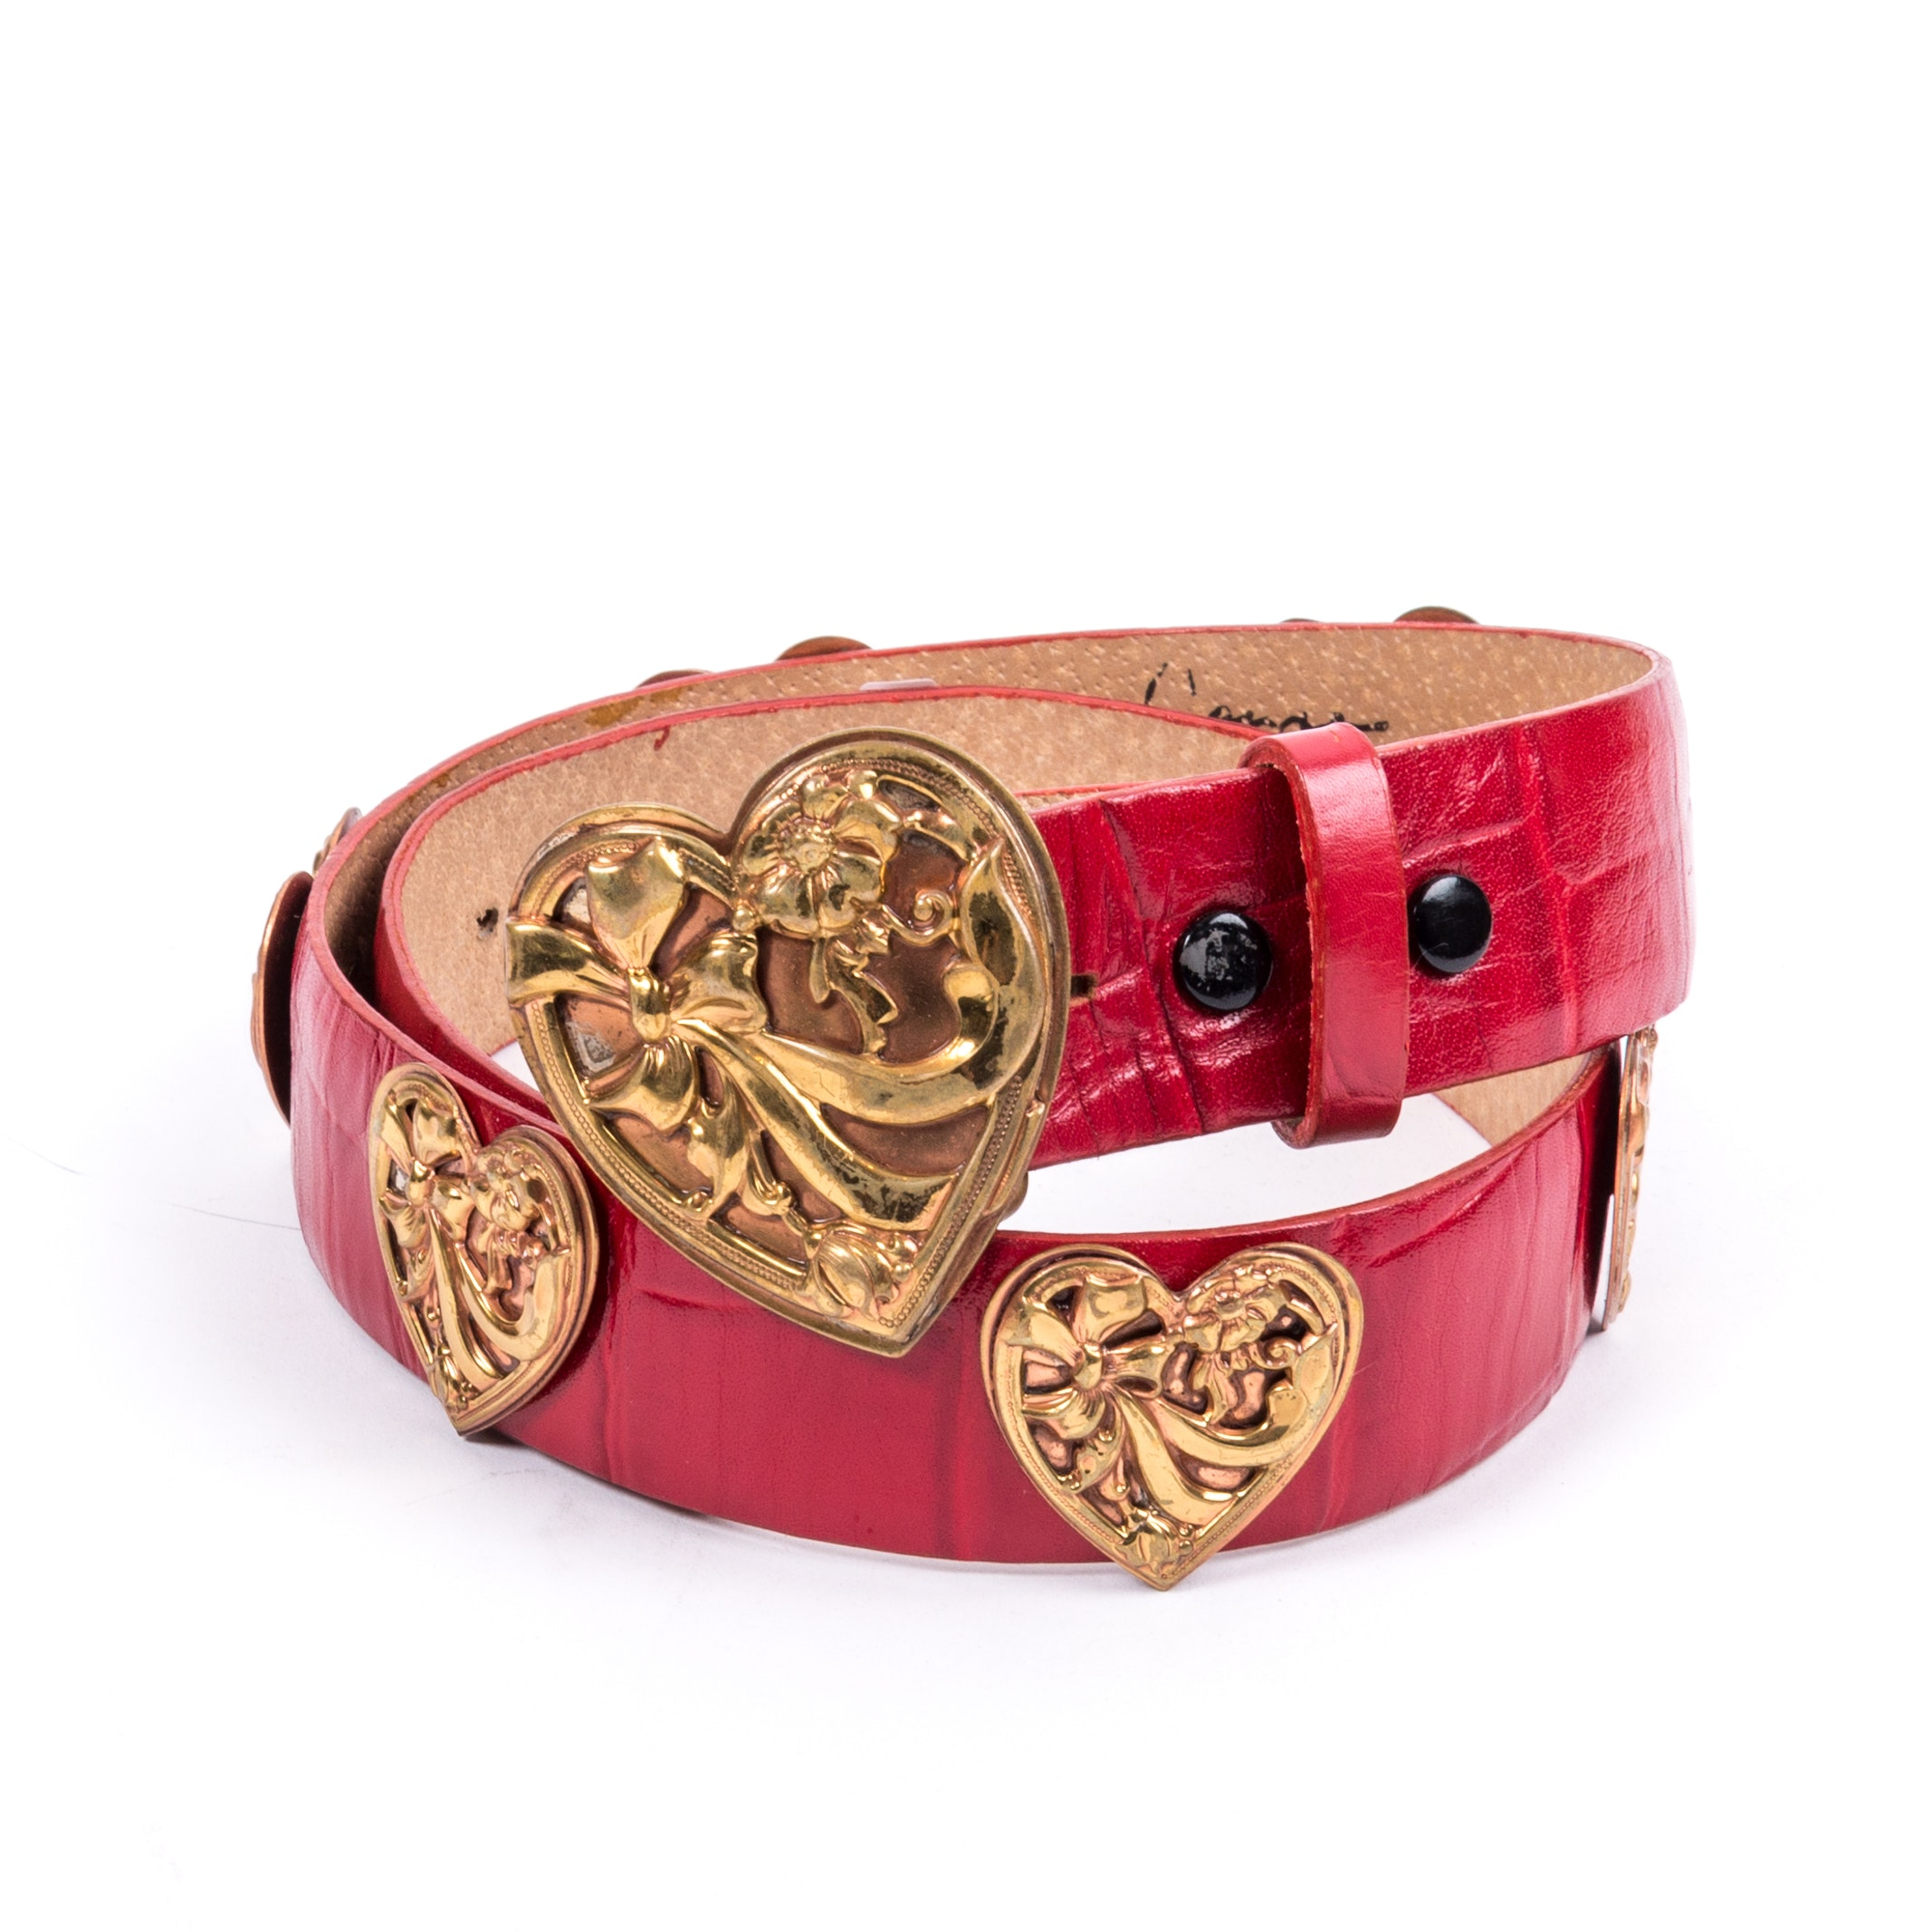 Vintage Elaine Coyne Red Leather Belt